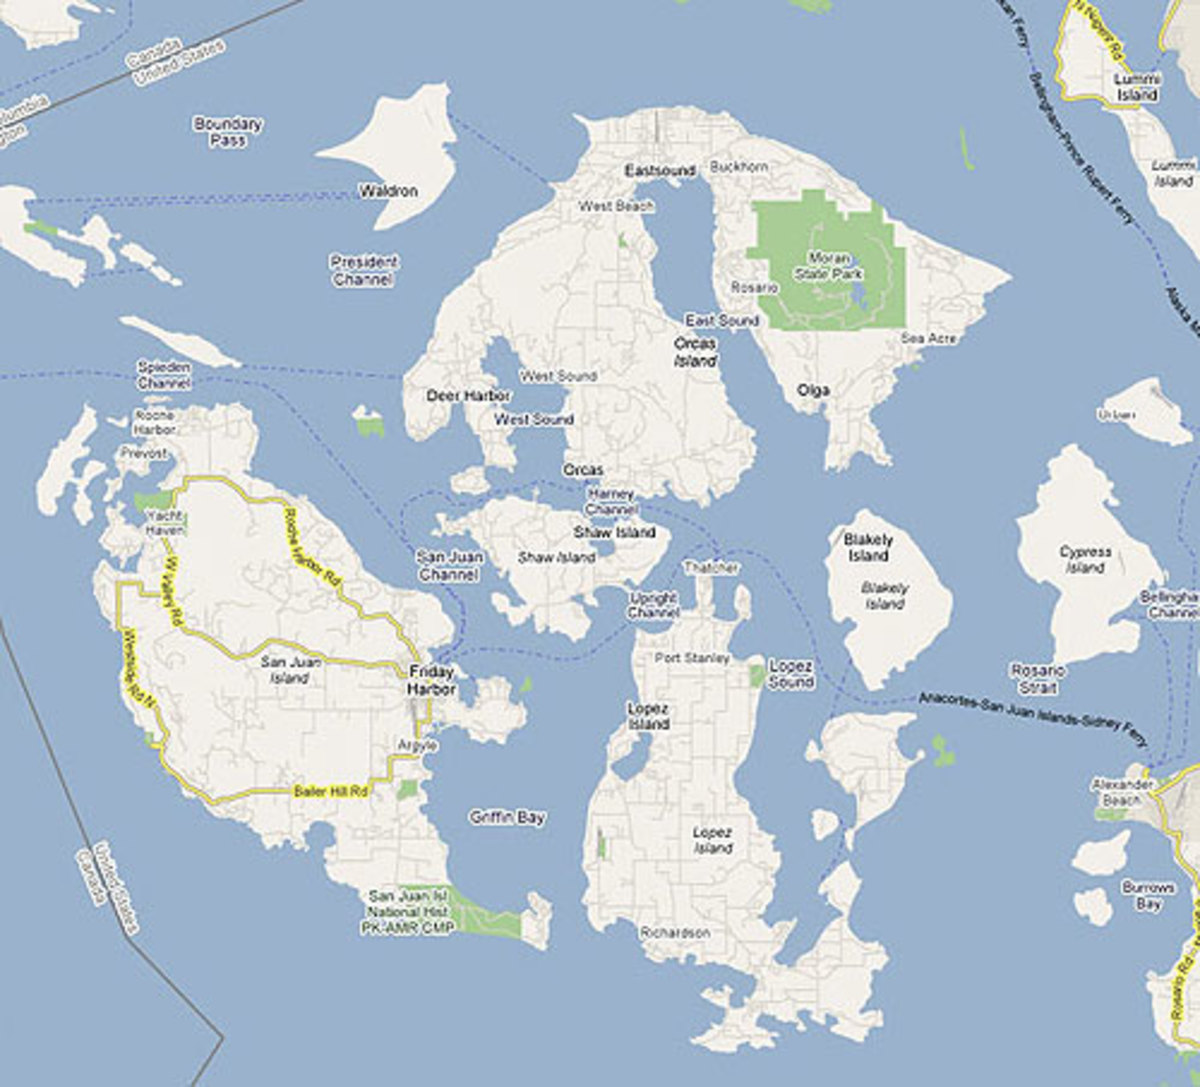 A Map of the San Juan Islands showing the Washington State Ferry Route